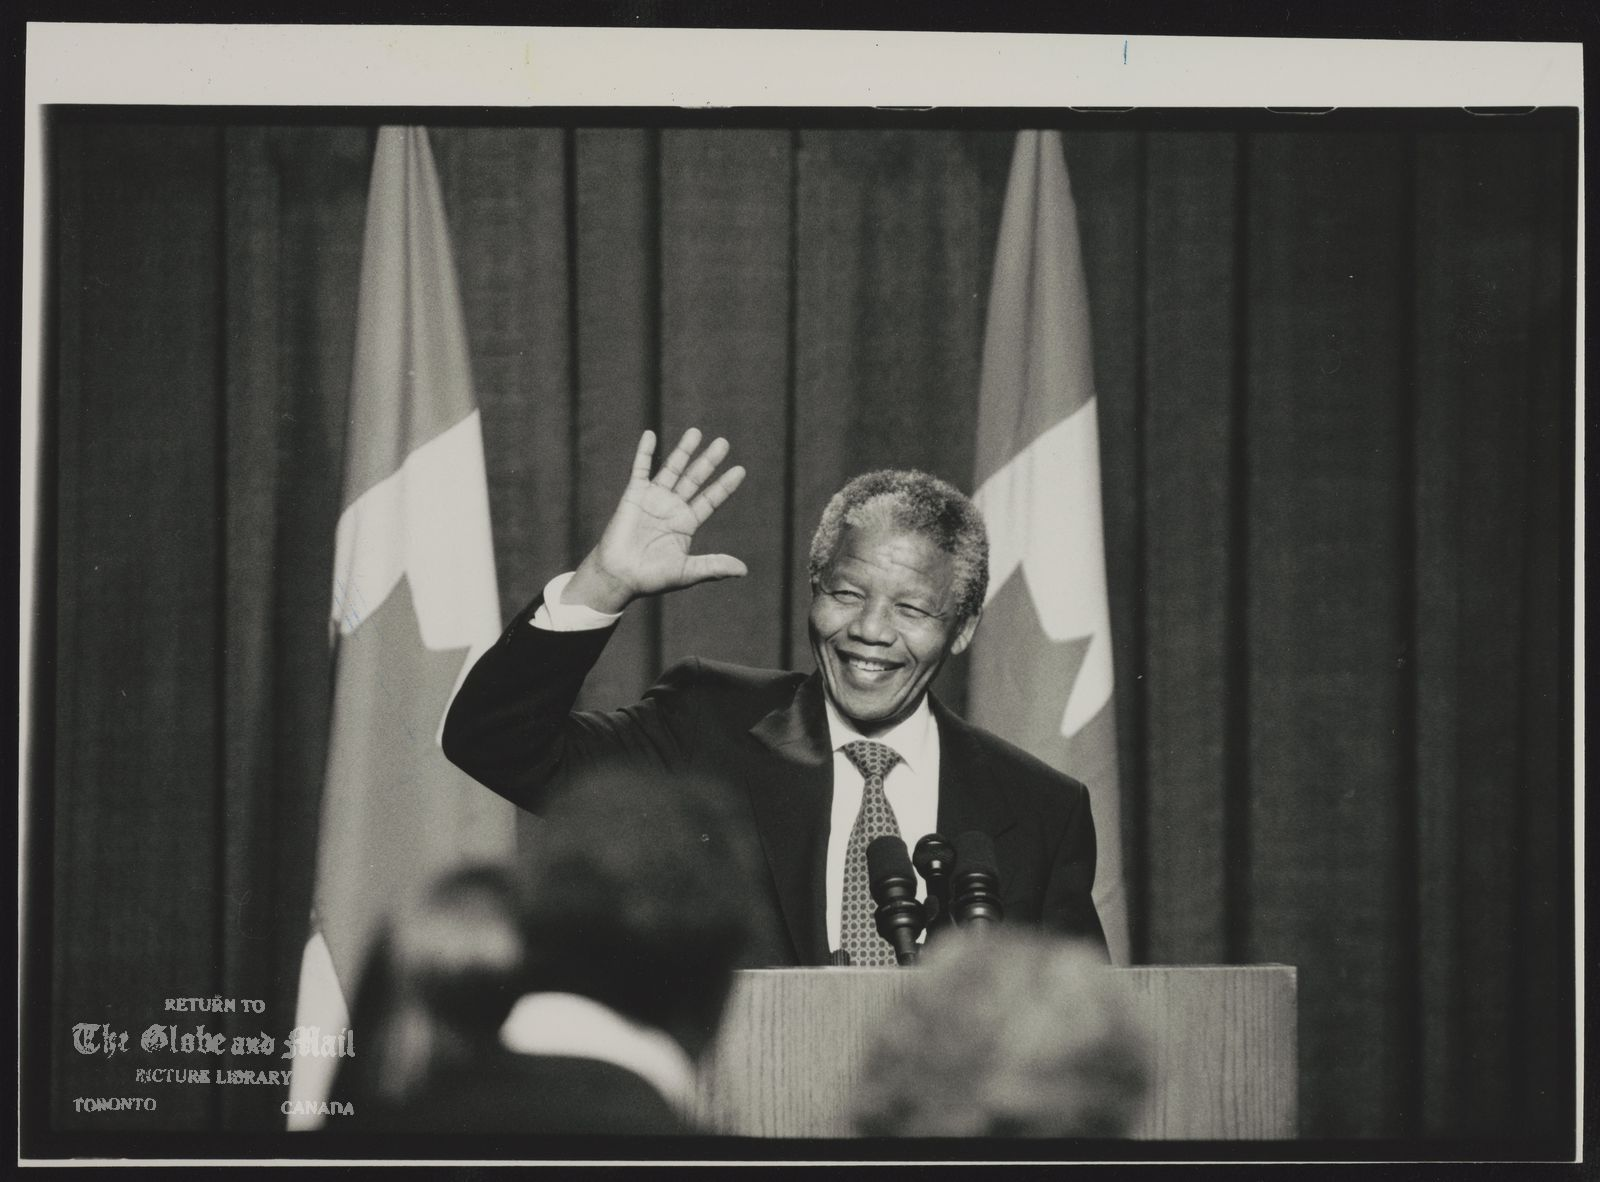 NELSON MANDELA SOUTH AFRICA. POLITICIAN. CANADA HAS LONG SUPPORTED BLACK HOPES IN SOUTH AFRICA. WITH FREE ELECTION APPROACHING, CANADIAN ADVISERS HAVE BEEN ABLE TO PUT THEIR SENTIMENTS INTO PRACTICE.